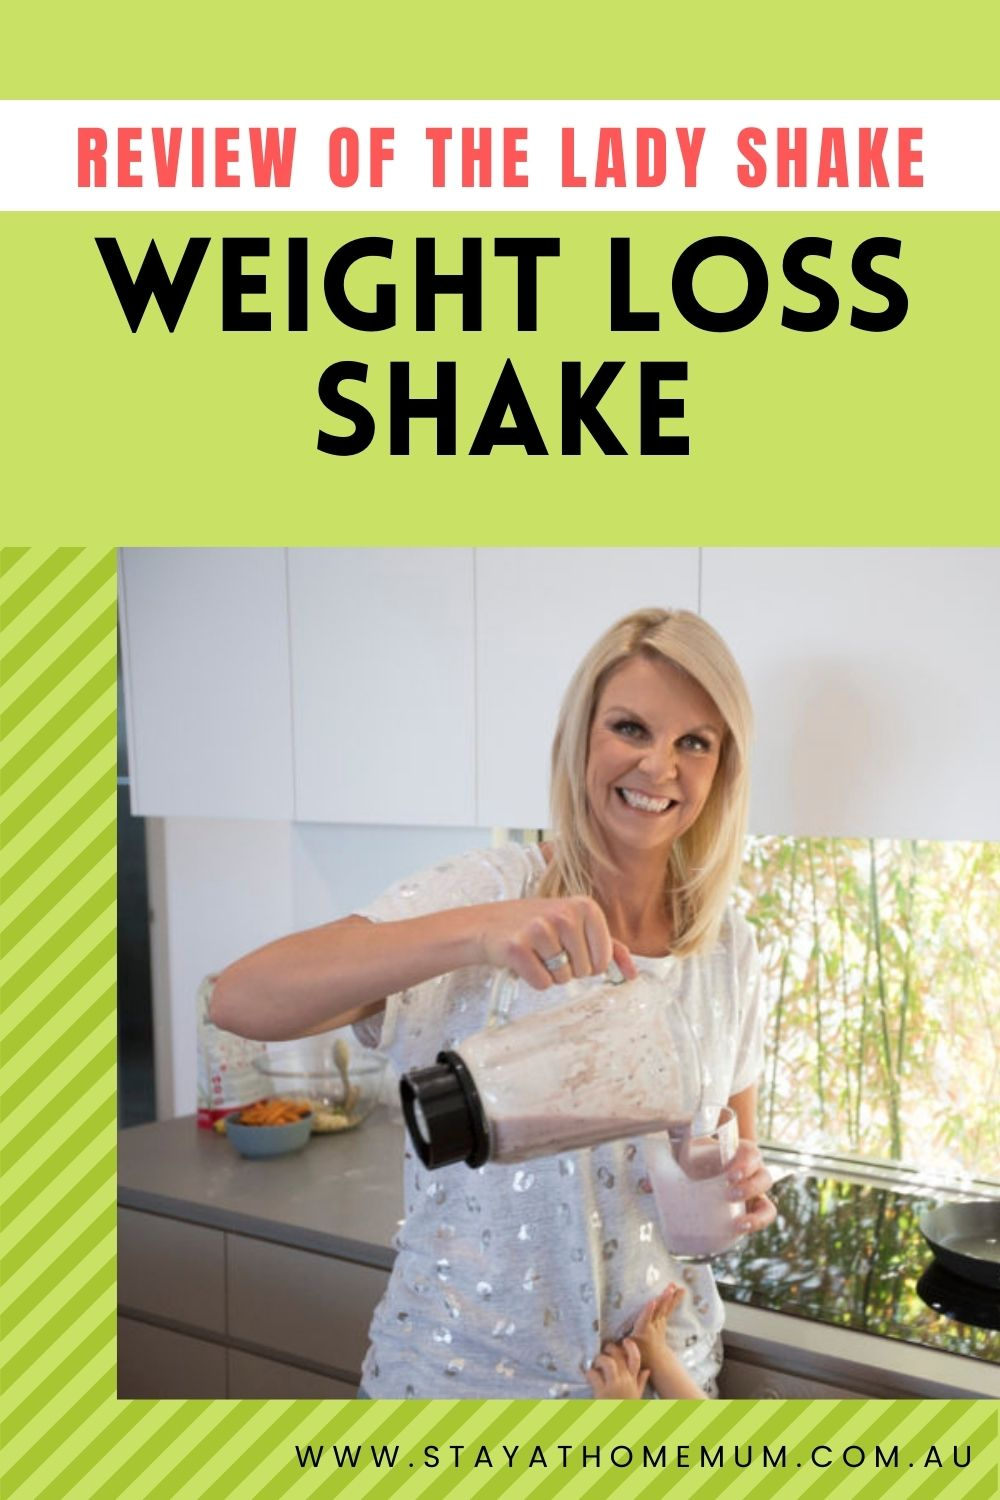 Review of The Lady Shake Weight Loss Shake | Stay at Home Mum